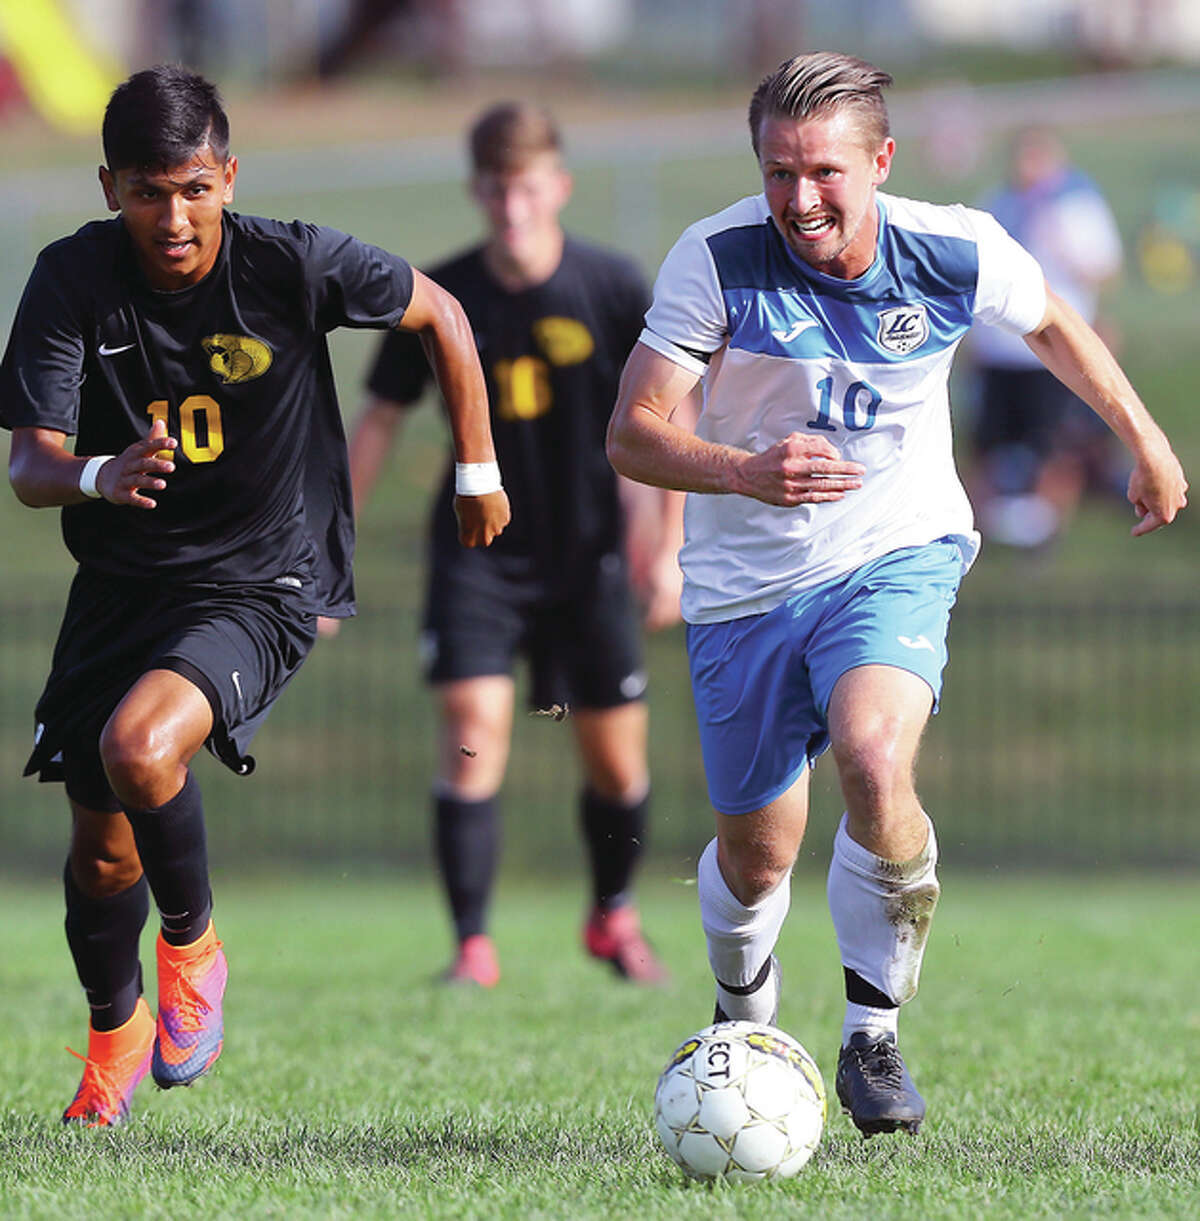 Lewis & Clark's Lochlan Reus, right, drives the ball upfield as he is trailed by Parkland's Alex Zarco during Saturday's match at LCCC's Soccer Stadium in Godfrey.